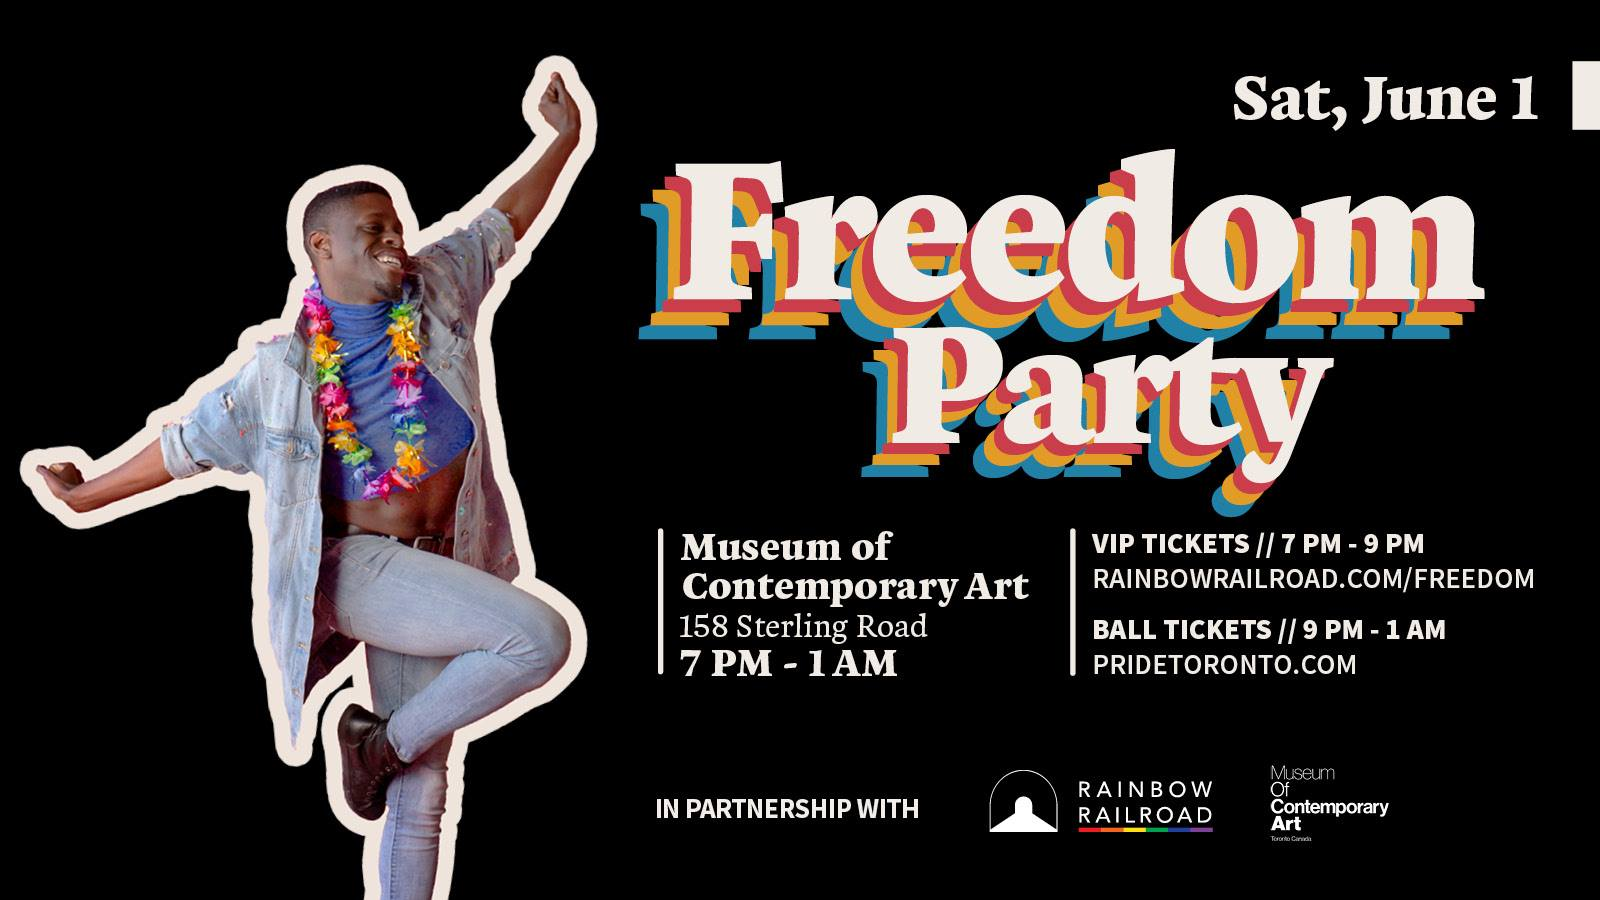 QueerEvents.ca - Toronto event listing - Freedom Party Launch party